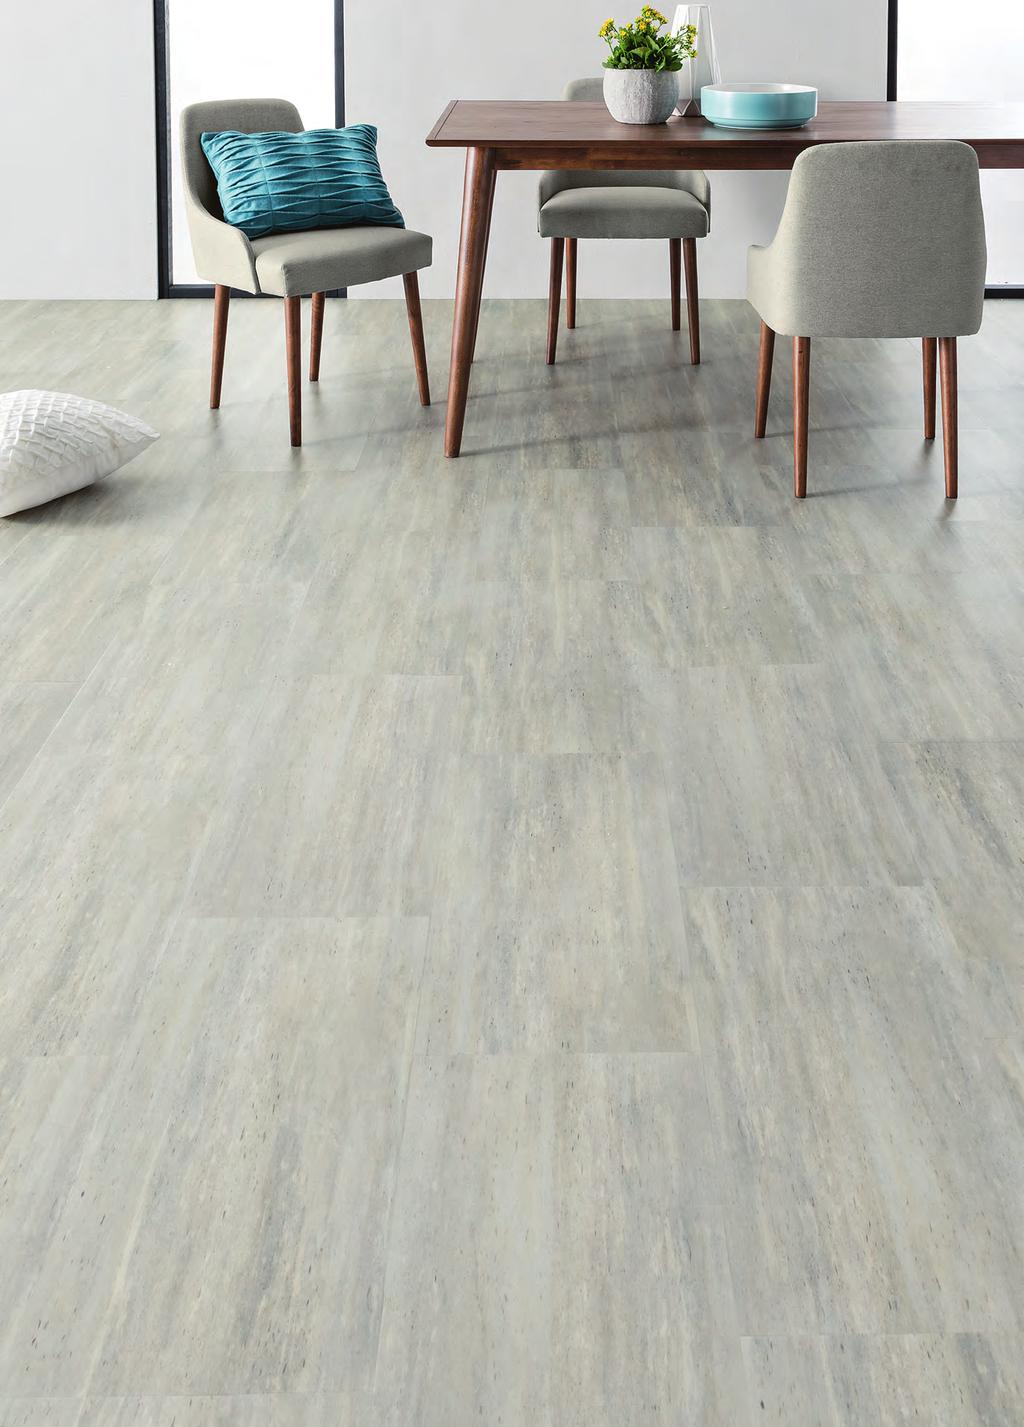 Allure Locking Gen 4 Tile - Silver Benton Allure is the ultimate stylish and